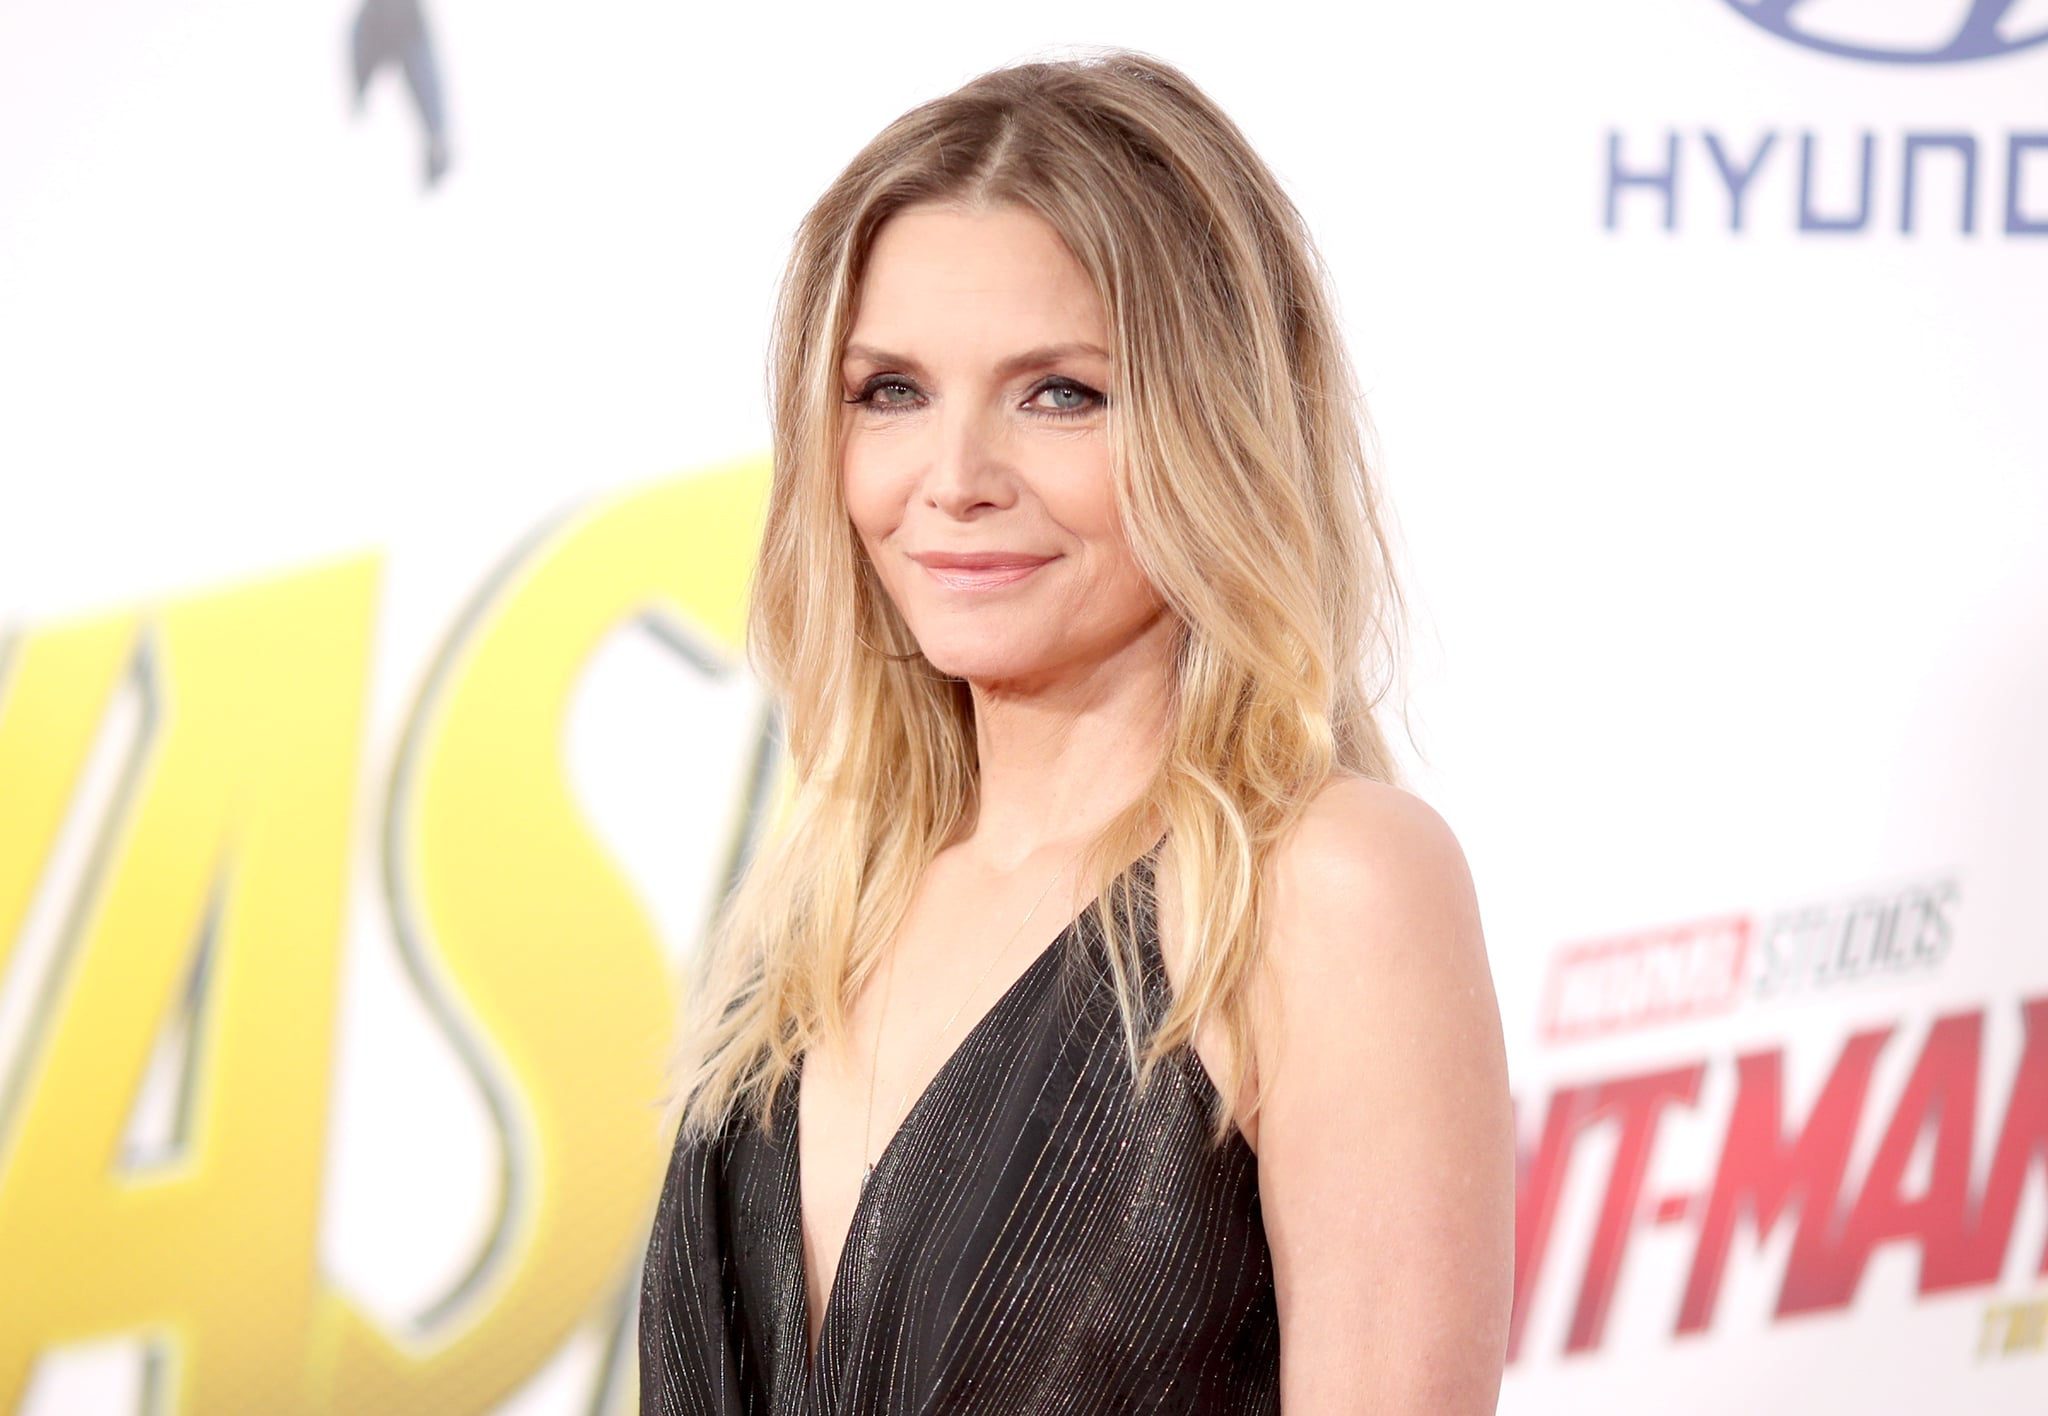 LOS ANGELES, CA - JUNE 25:  Michelle Pfeiffer attends the premiere of Disney And Marvel's